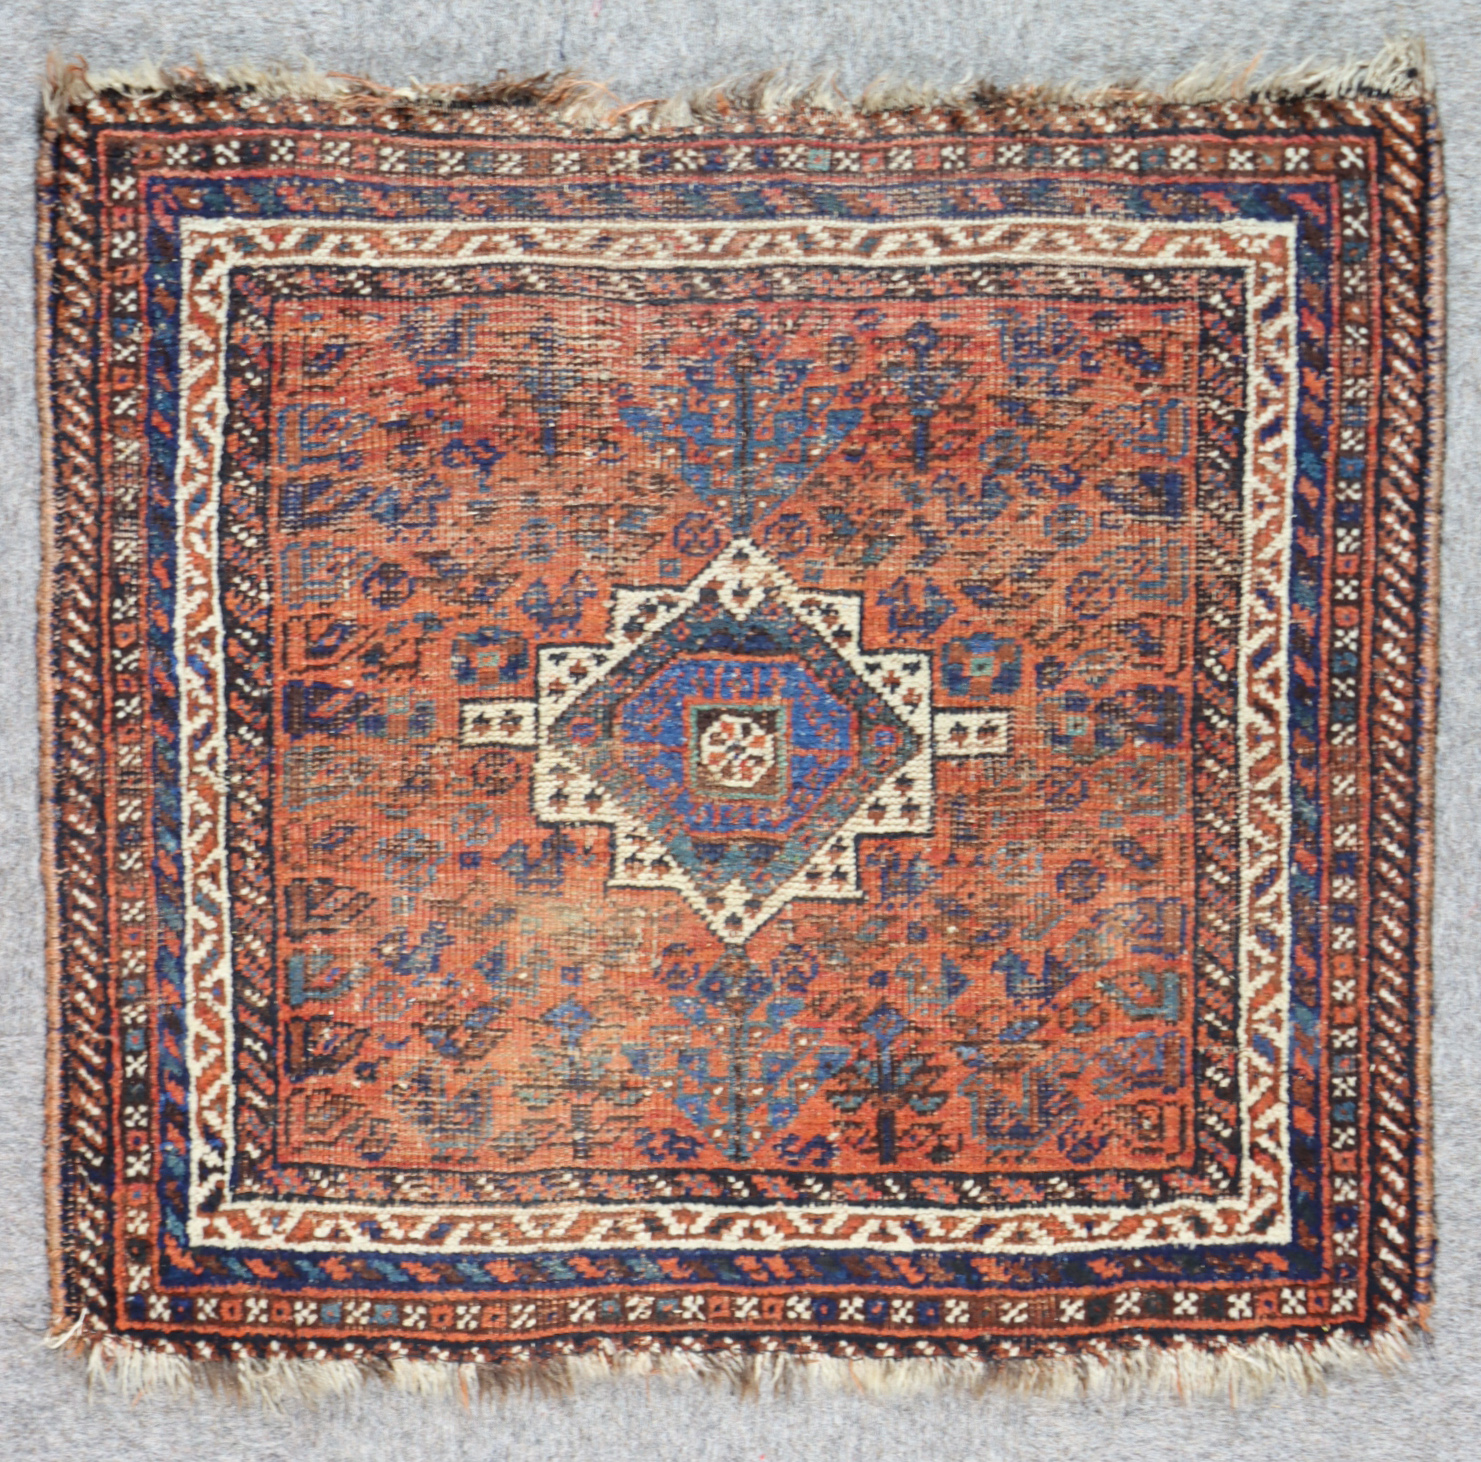 A Late 19th/Early 20th Century Persian Juval woven in colours of navy blue, ivory and terracotta,